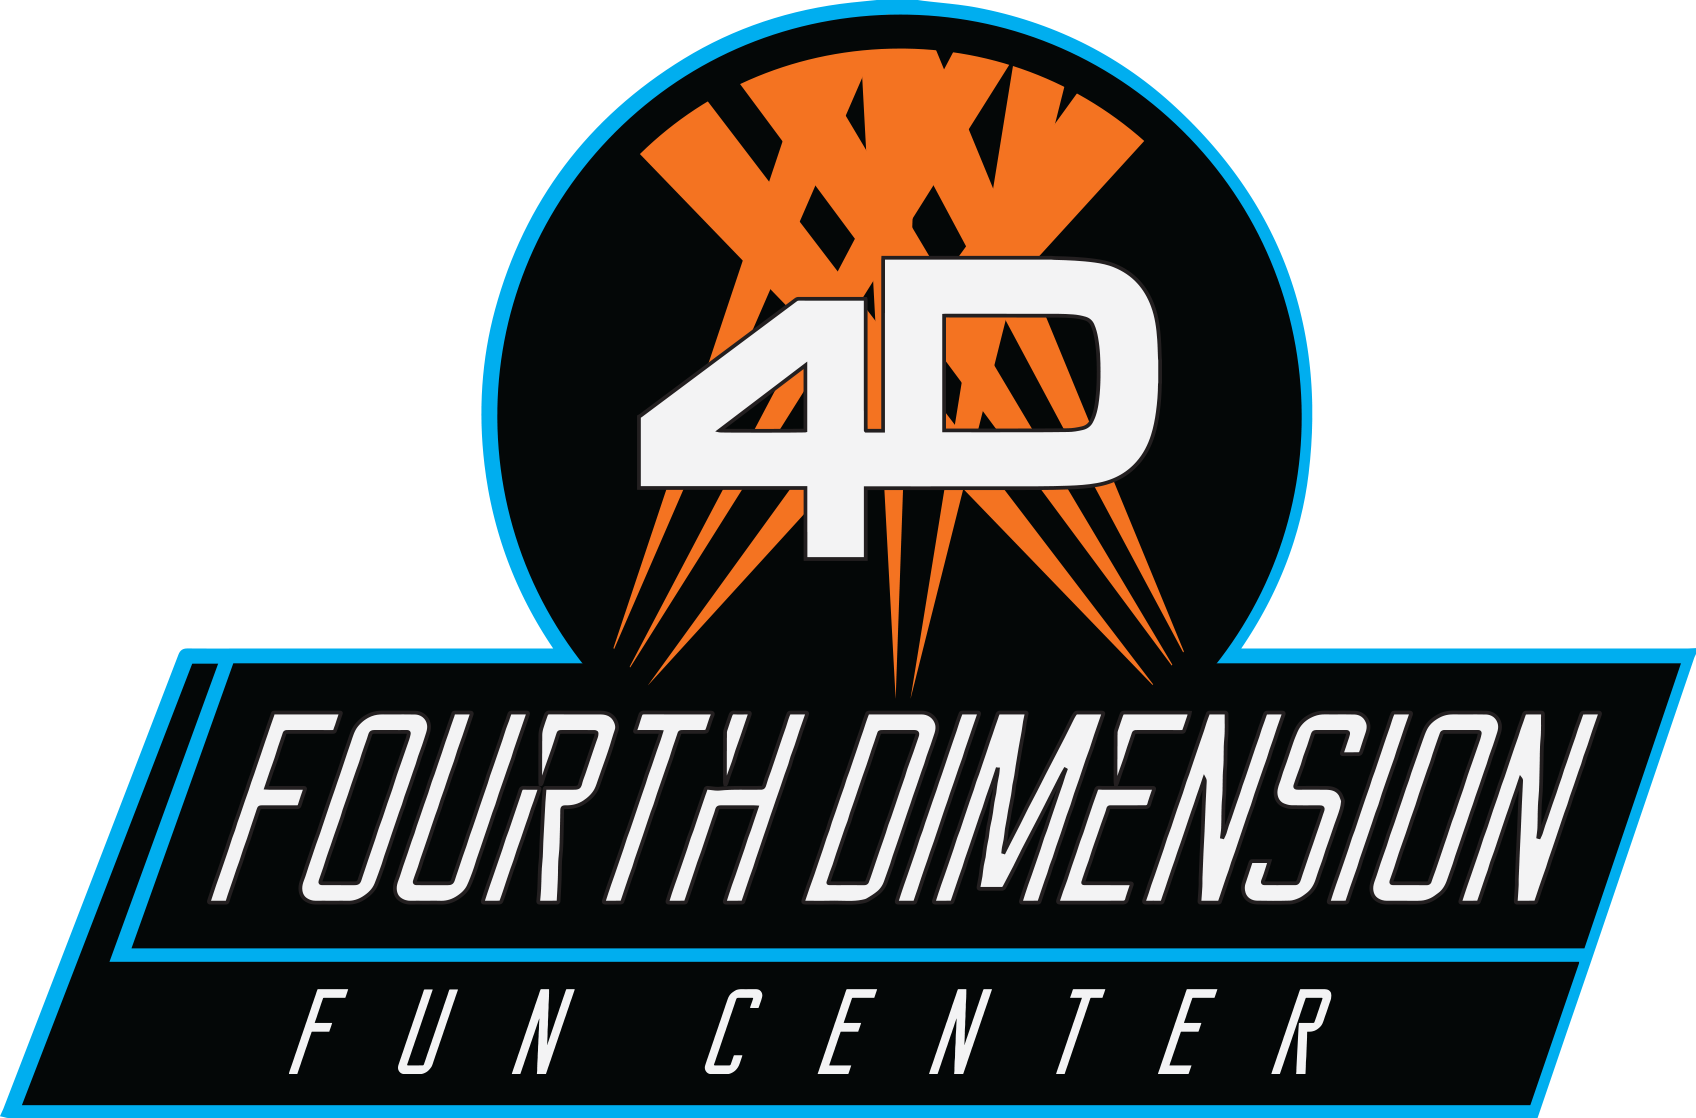 4D - Fourth Dimension Fun Center